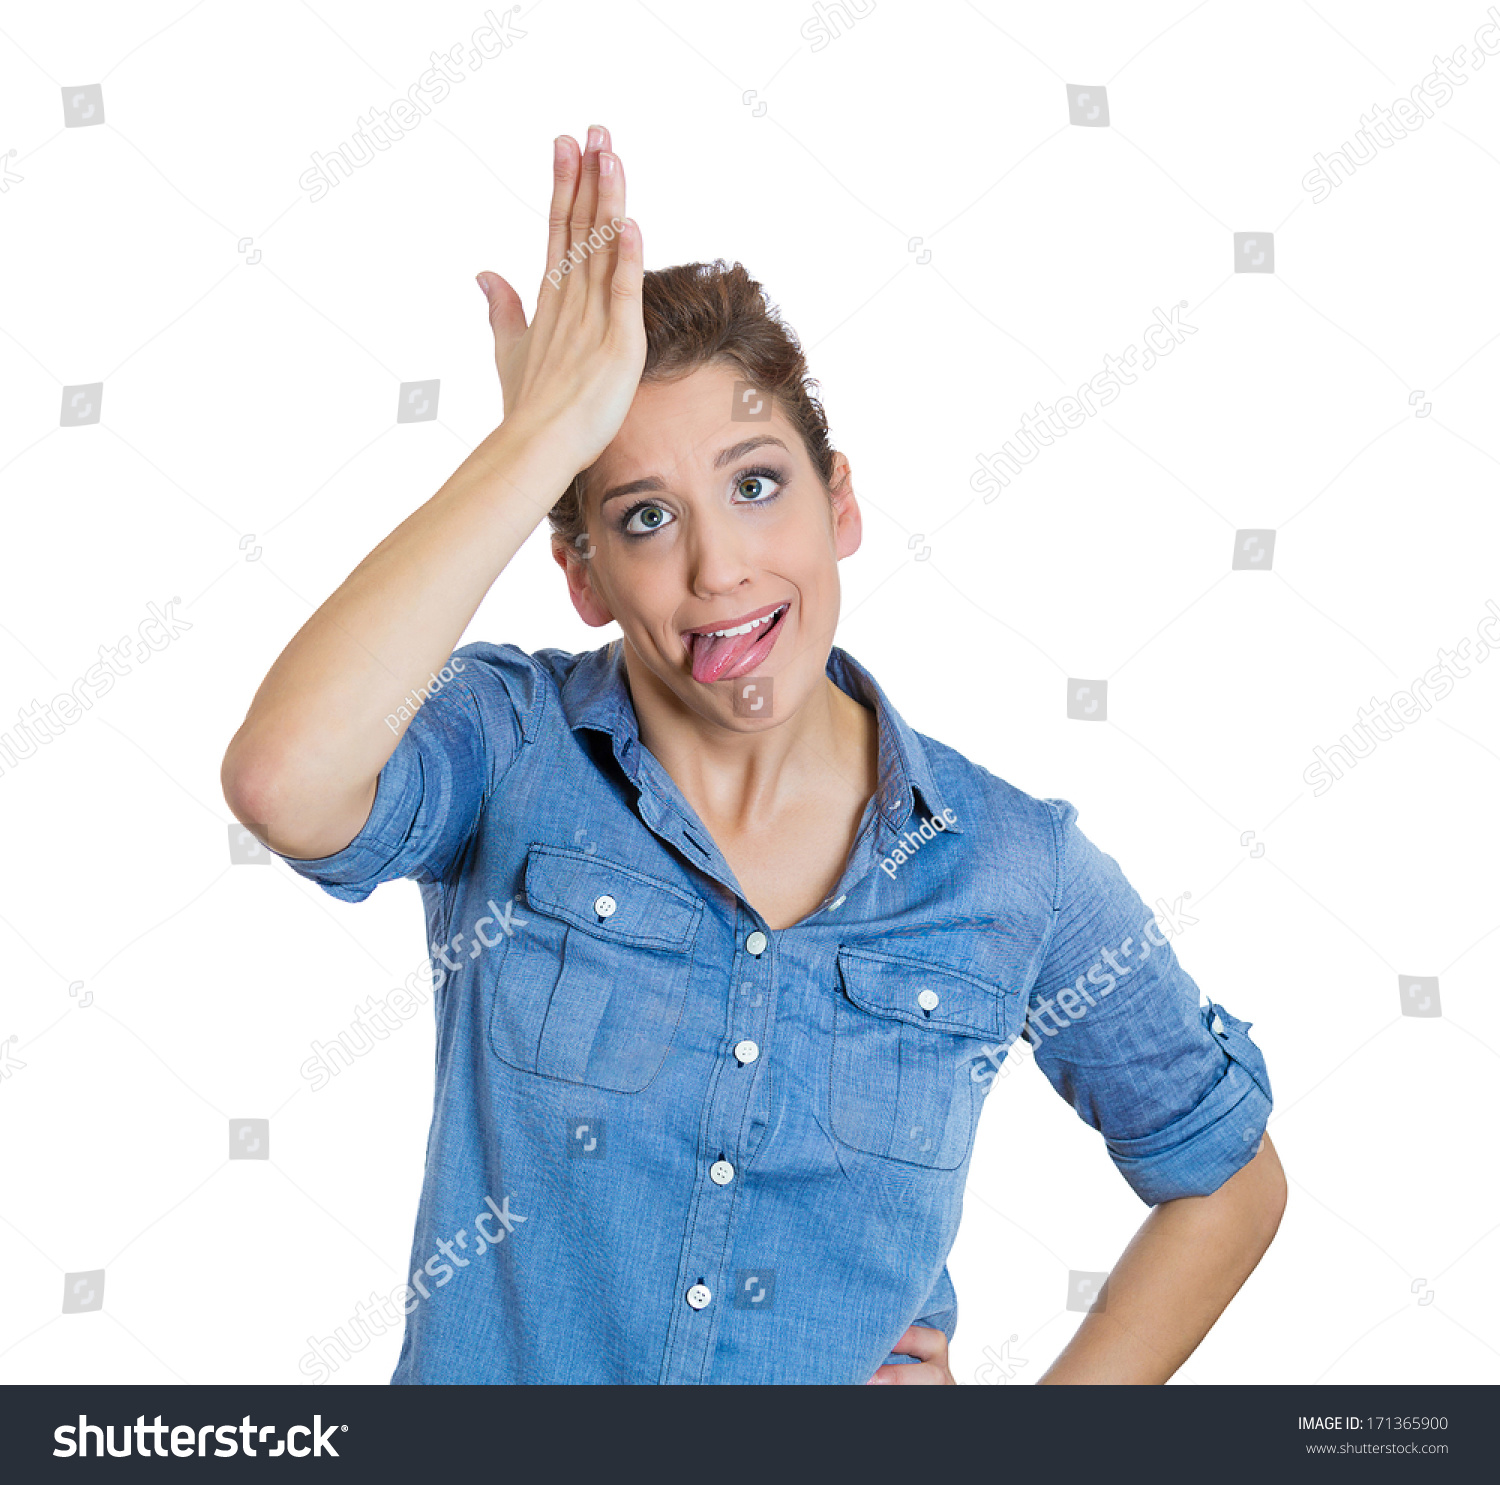 https://image.shutterstock.com/z/stock-photo-closeup-portrait-of-goofy-woman-tongue-sticking-out-slapping-hand-on-head-to-say-duh-isolated-on-171365900.jpg